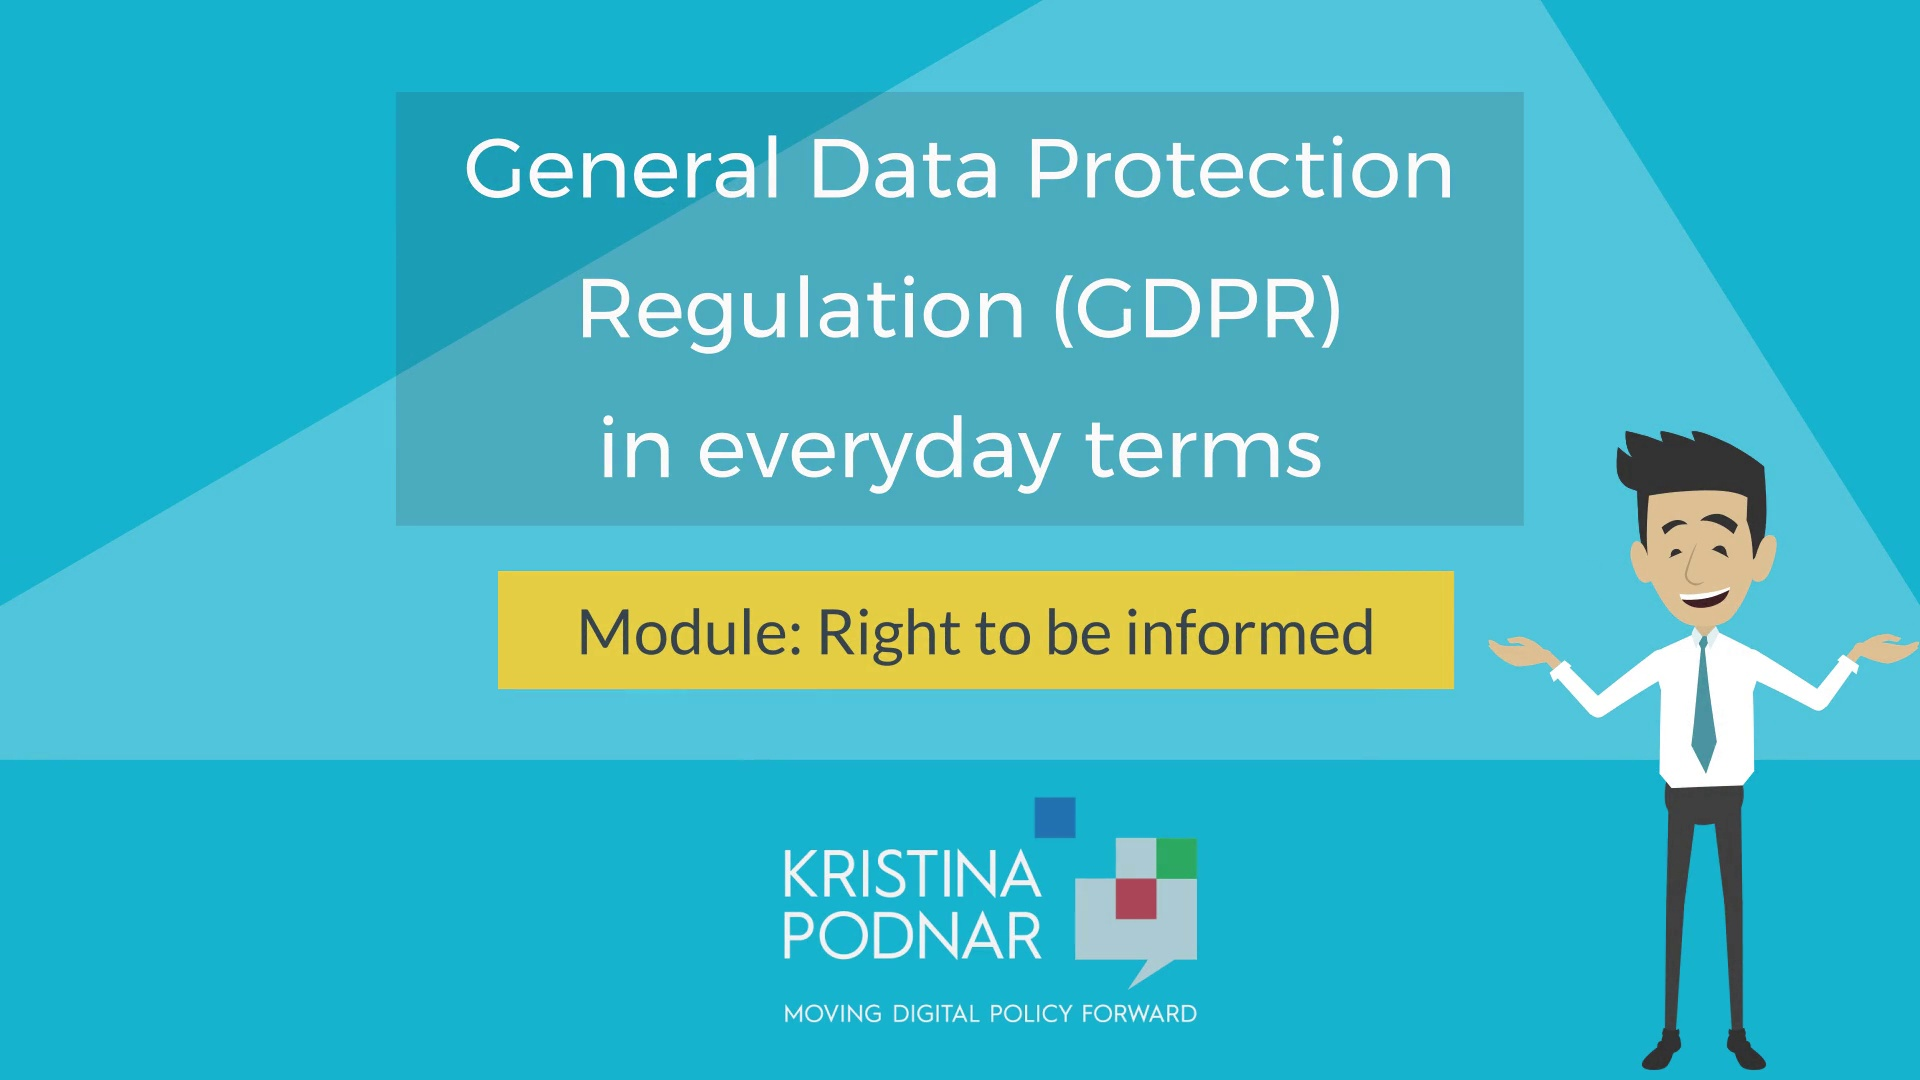 GDPR: Right to Be Informed